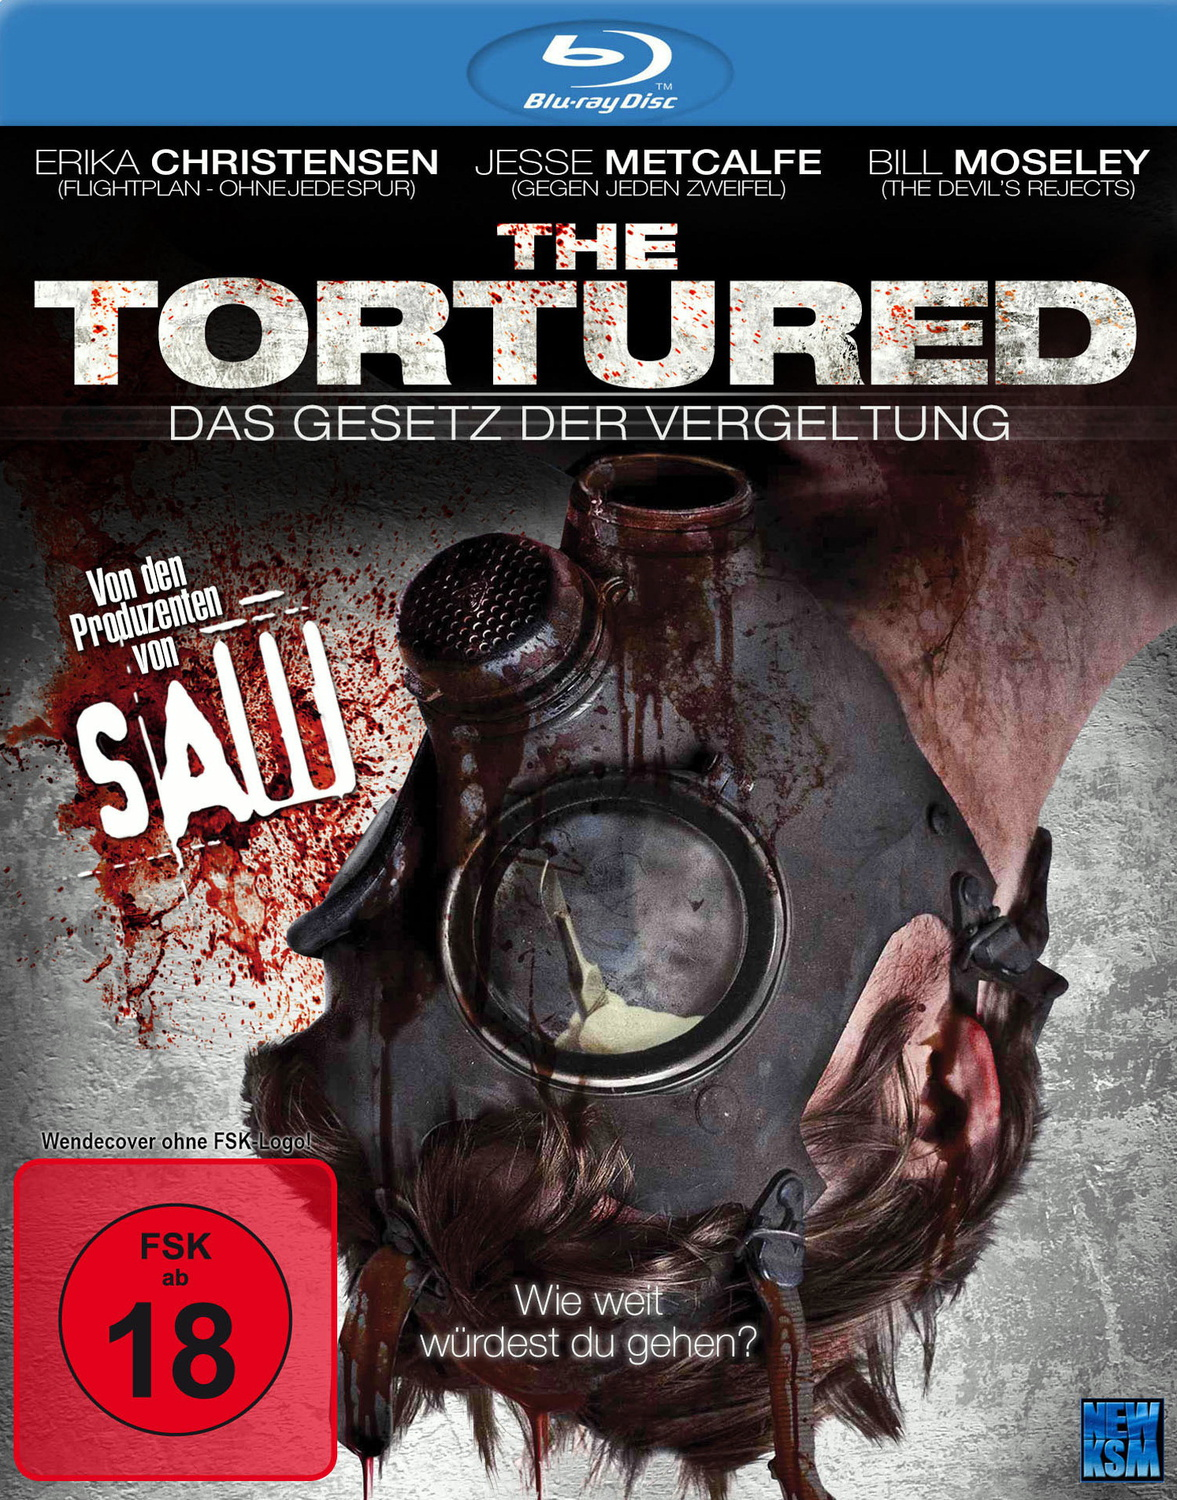 The.Tortured.Das.Gesetz.der.Vergeltung.2010.German.DL.1080p.BluRay.x264-ENCOUNTERS